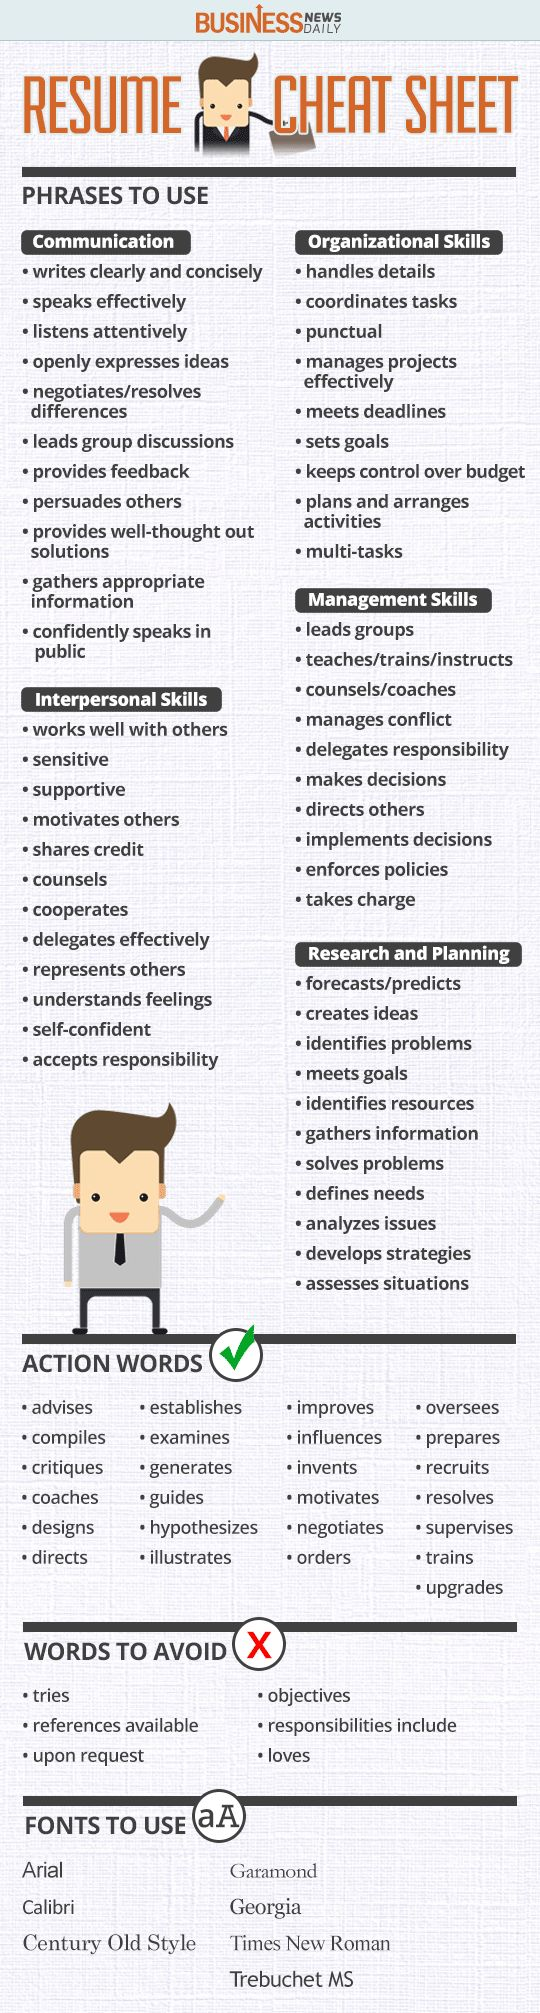 Opposenewapstandardsus  Pleasant  Ideas About Resume On Pinterest  Cv Format Resume  With Marvelous Resume Cheat Sheet Infographic Andrews Almost Done With A Complete Unit On Employment Which With Nice Resuming Also Words For Resume In Addition Construction Project Manager Resume And Academic Resume Template As Well As Front Desk Resume Additionally Resume Templates For Mac From Pinterestcom With Opposenewapstandardsus  Marvelous  Ideas About Resume On Pinterest  Cv Format Resume  With Nice Resume Cheat Sheet Infographic Andrews Almost Done With A Complete Unit On Employment Which And Pleasant Resuming Also Words For Resume In Addition Construction Project Manager Resume From Pinterestcom